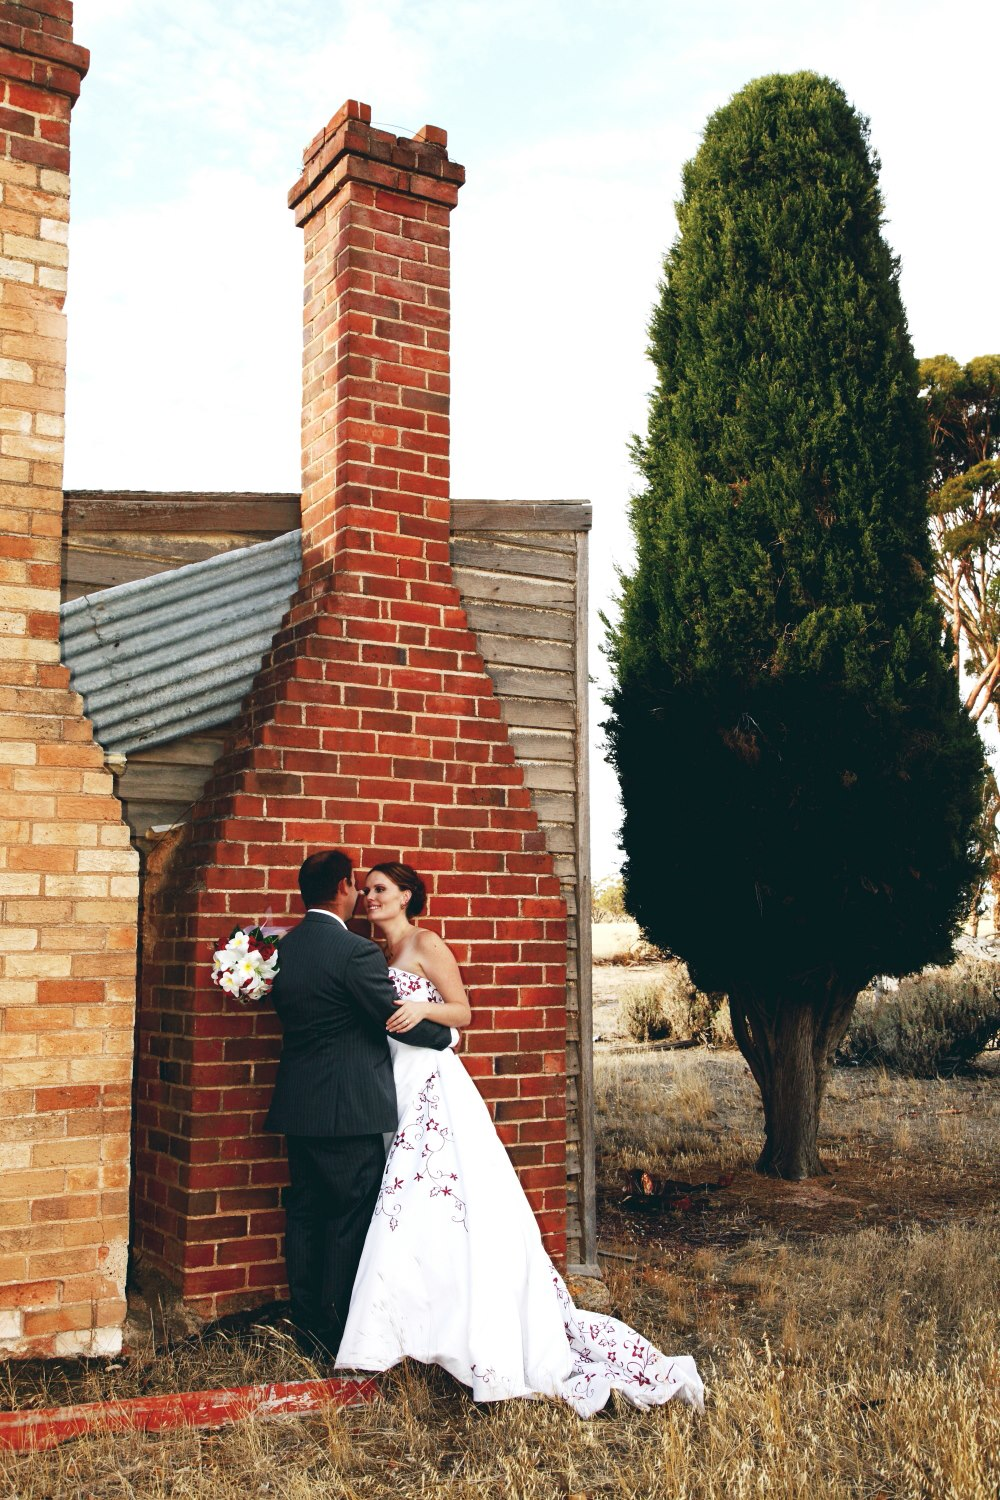 Photographica_Wheatbelt Wedding_06